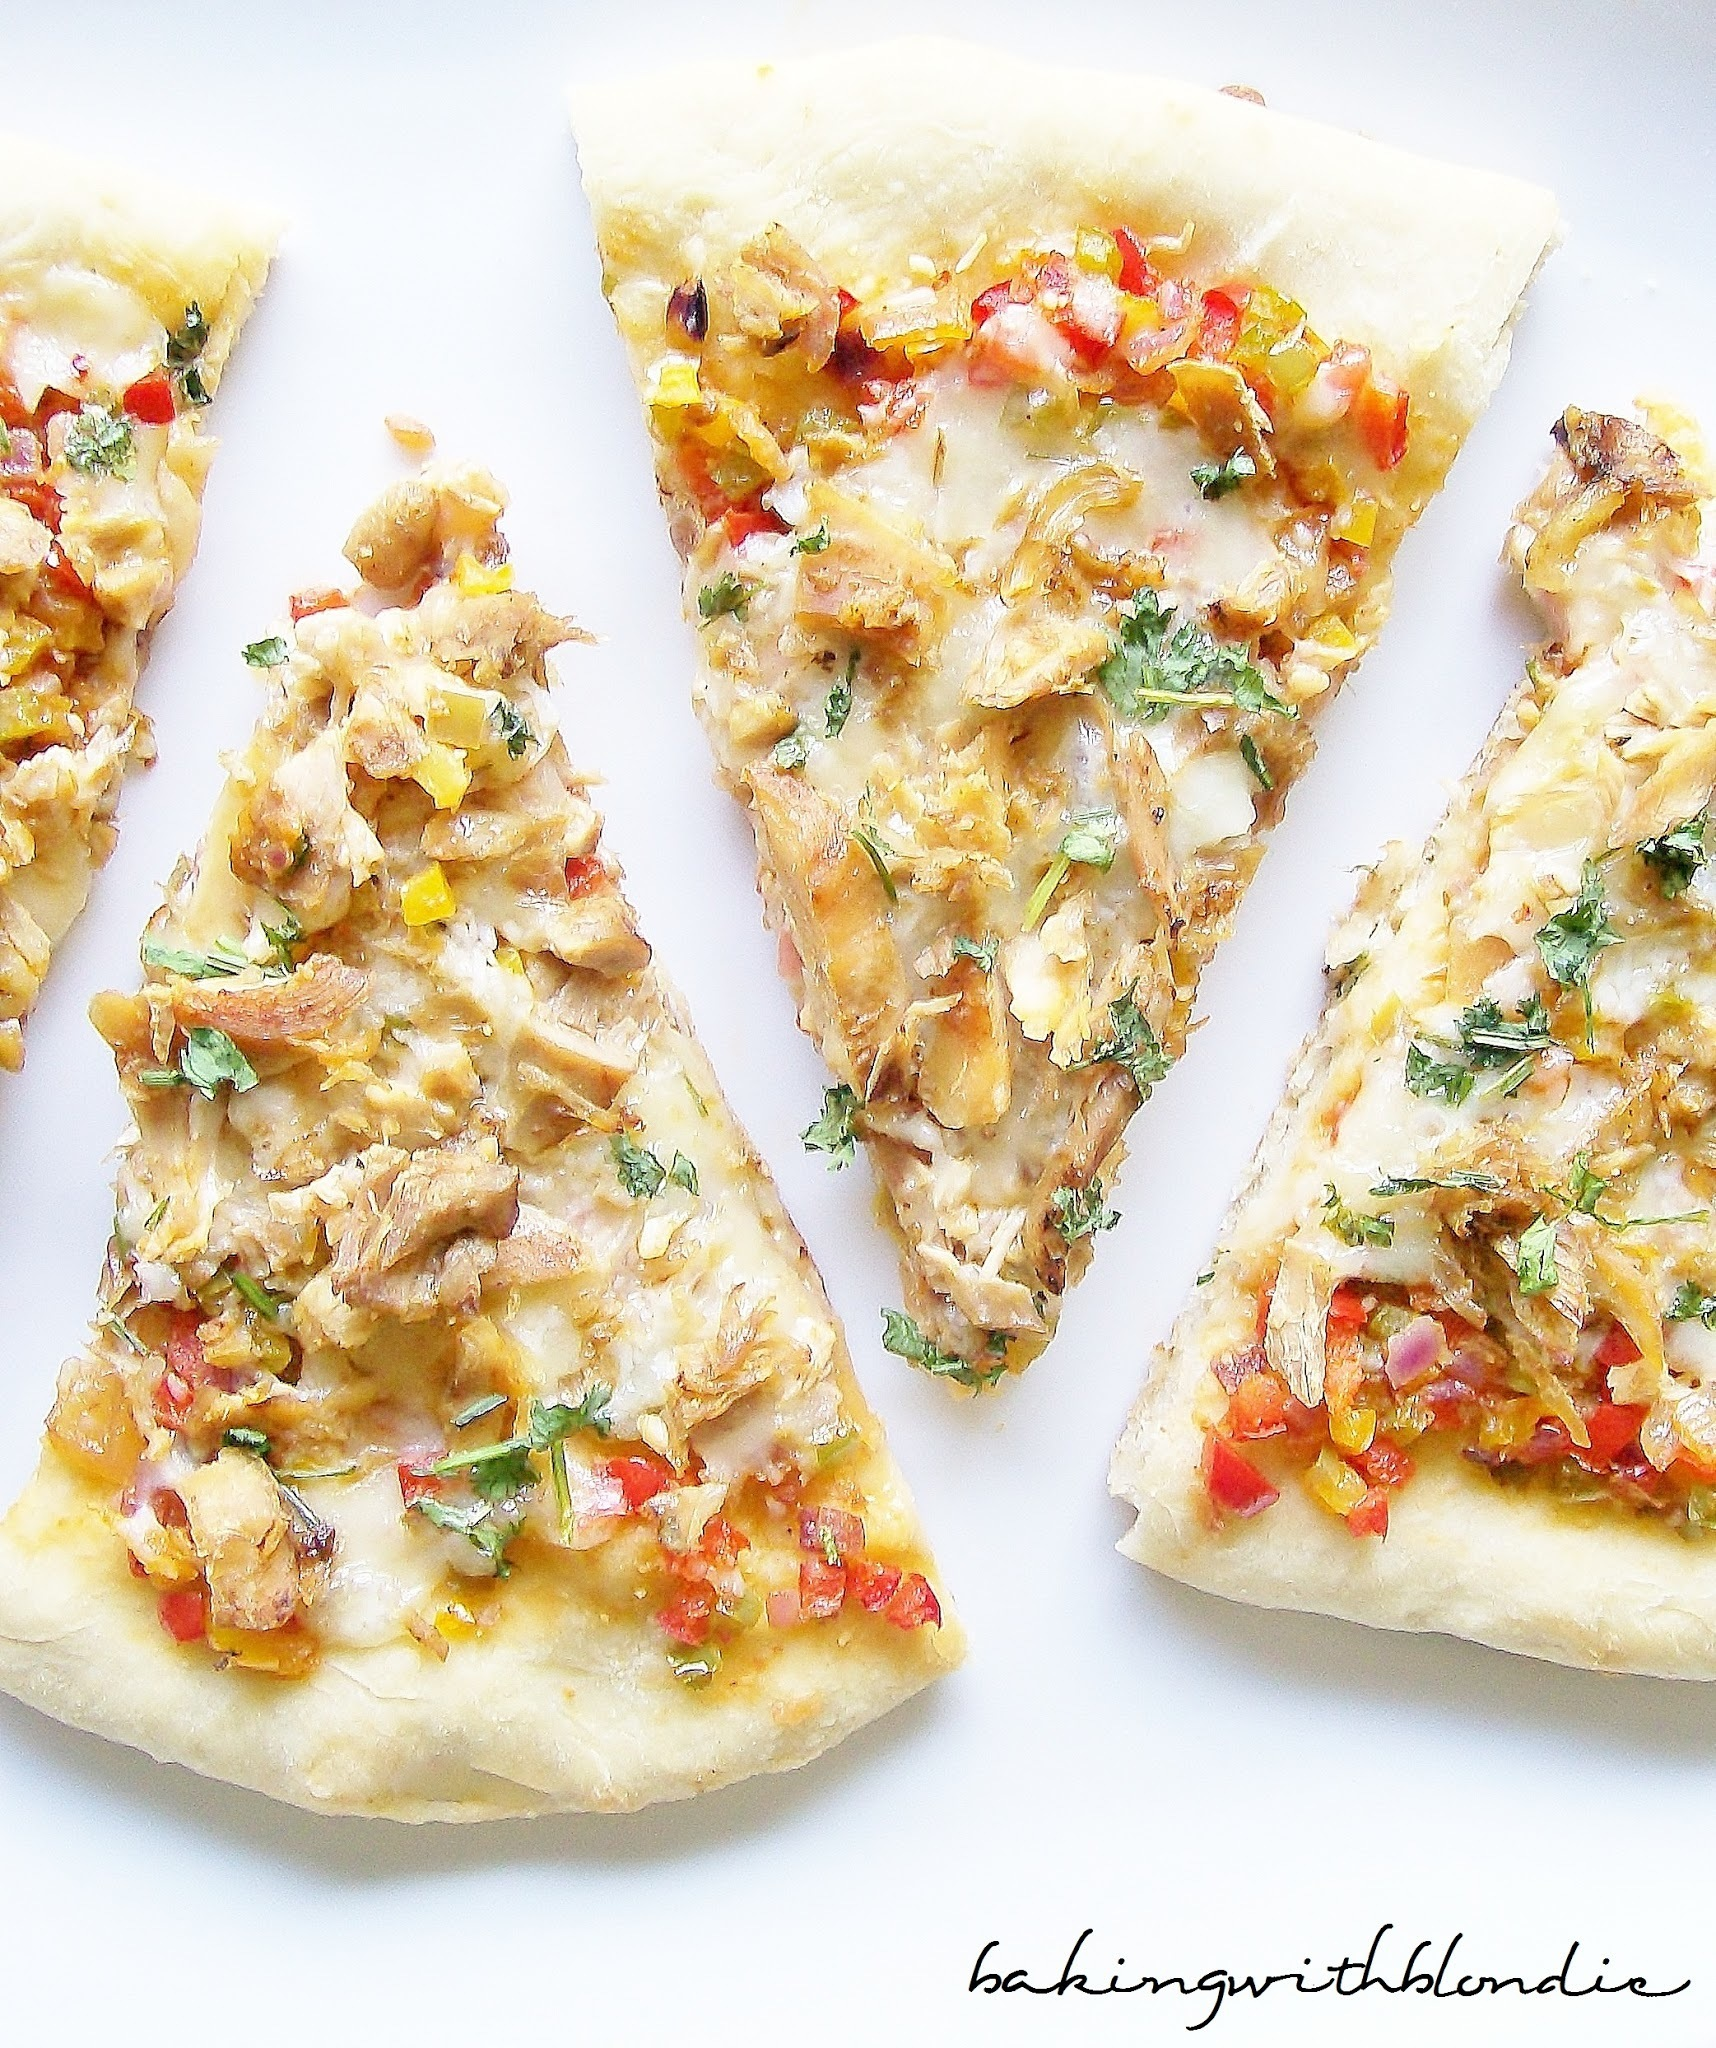 Spicy Chicken Pizza with Pepper Jack Cheese and Cilantro,  Simple No Knead Pizza Dough